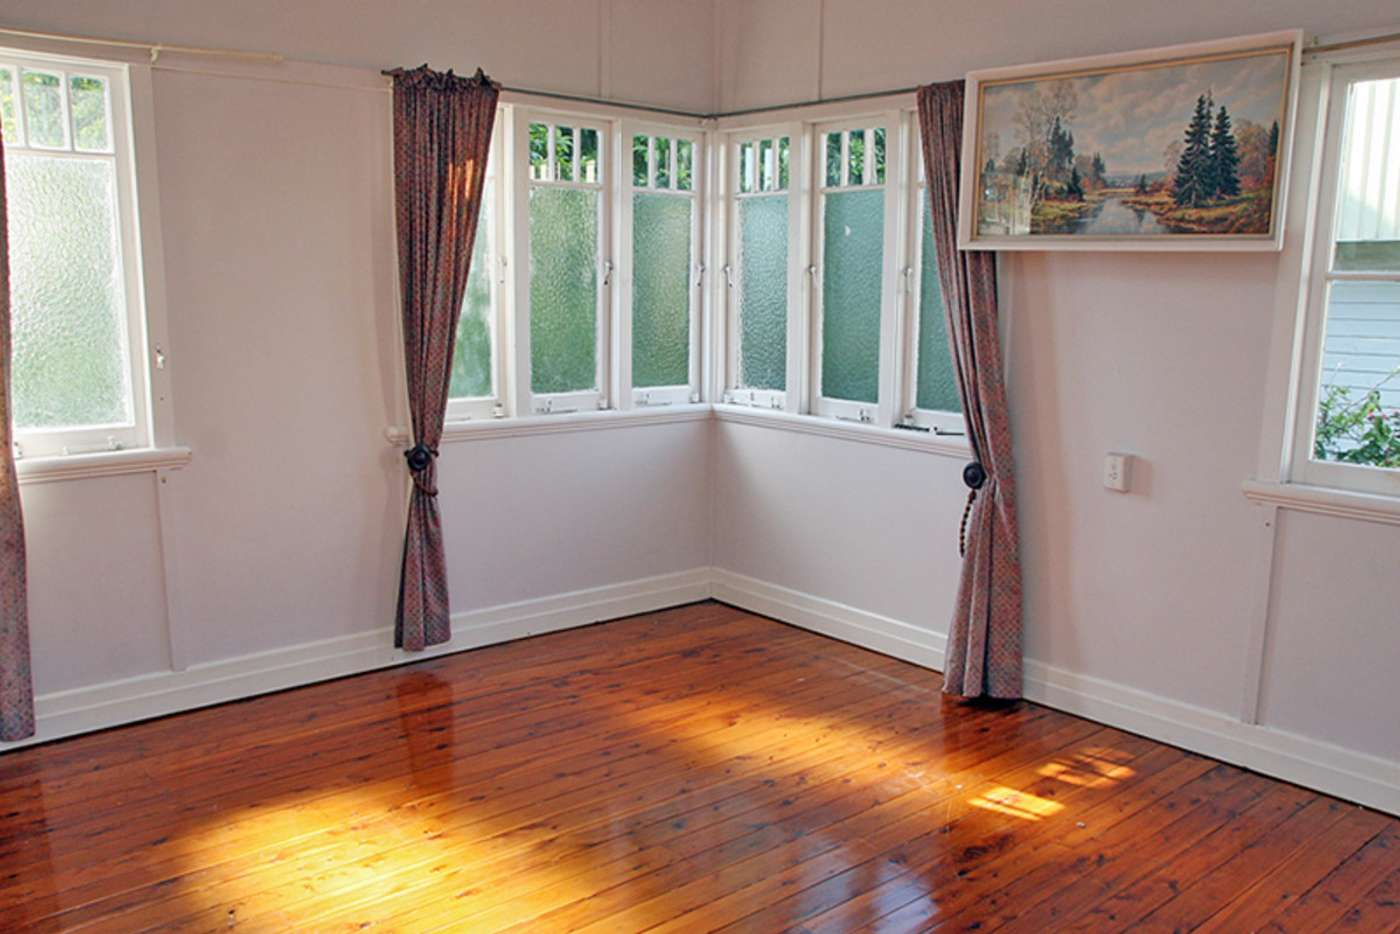 Seventh view of Homely house listing, 106 Newdegate Street, Greenslopes QLD 4120